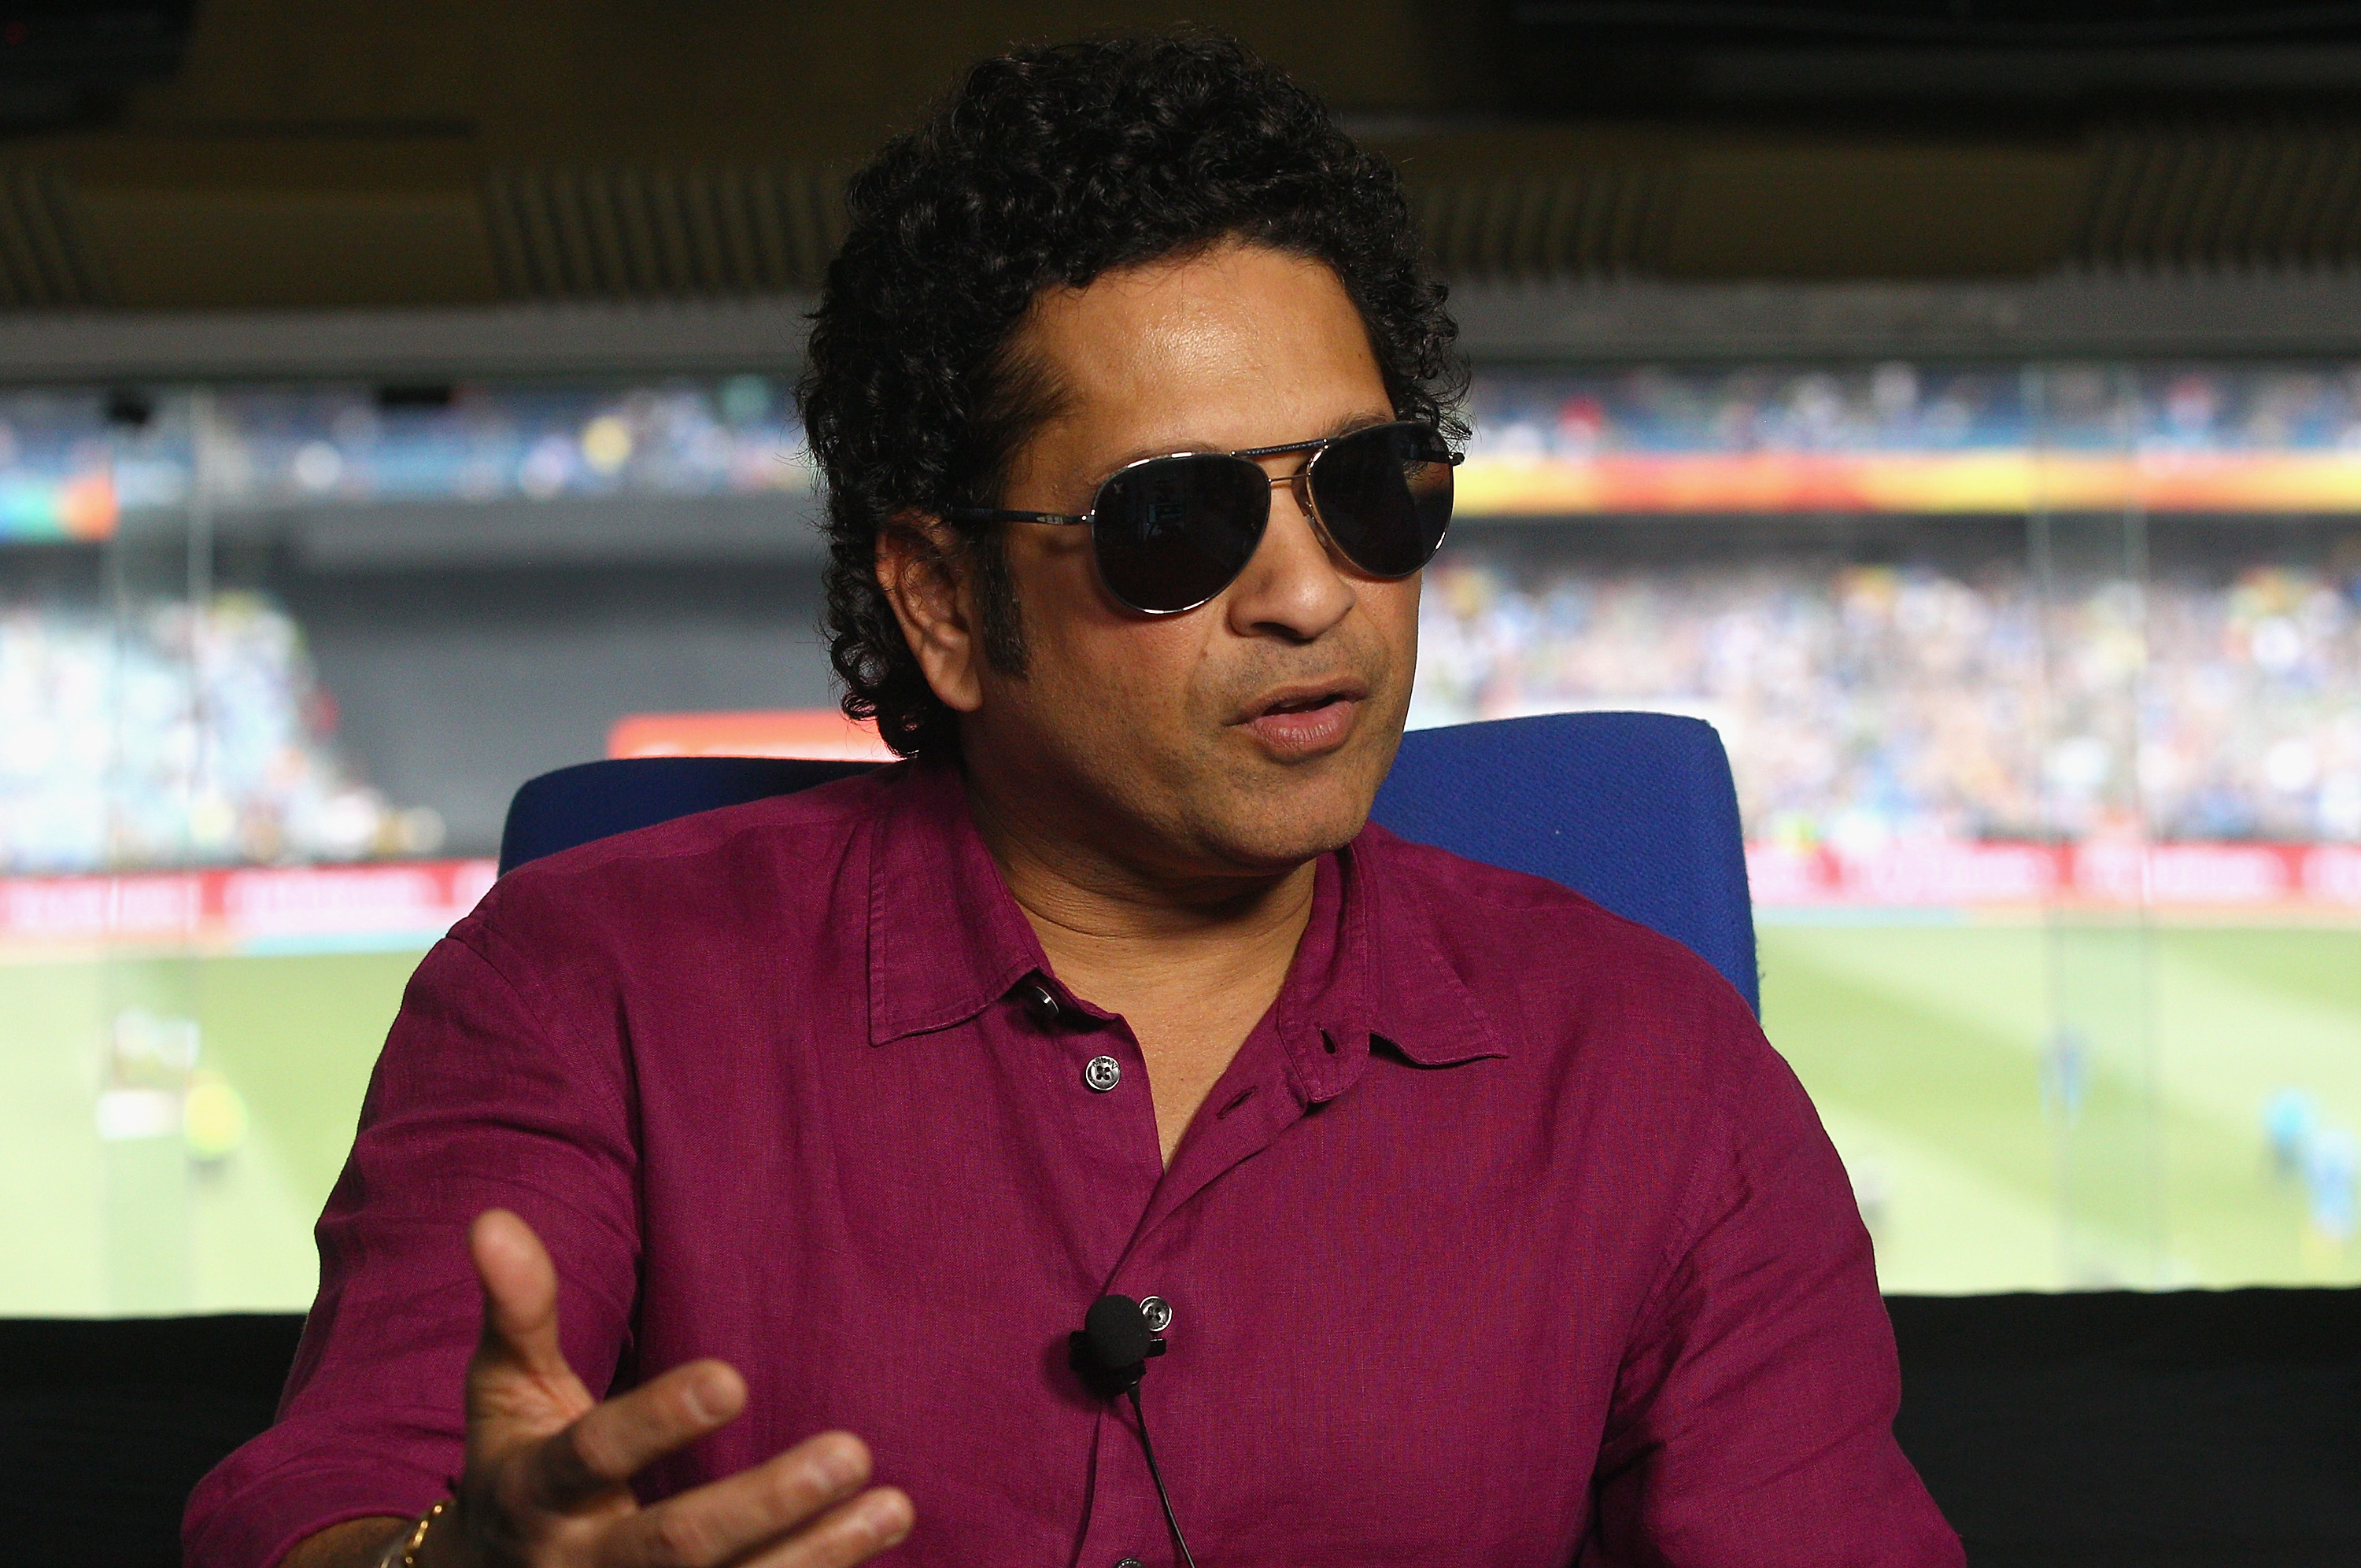 Lovely Sachin Tendulkar Nice Speaking With Press Conference Still Background Free Hd Mobile Download Photo